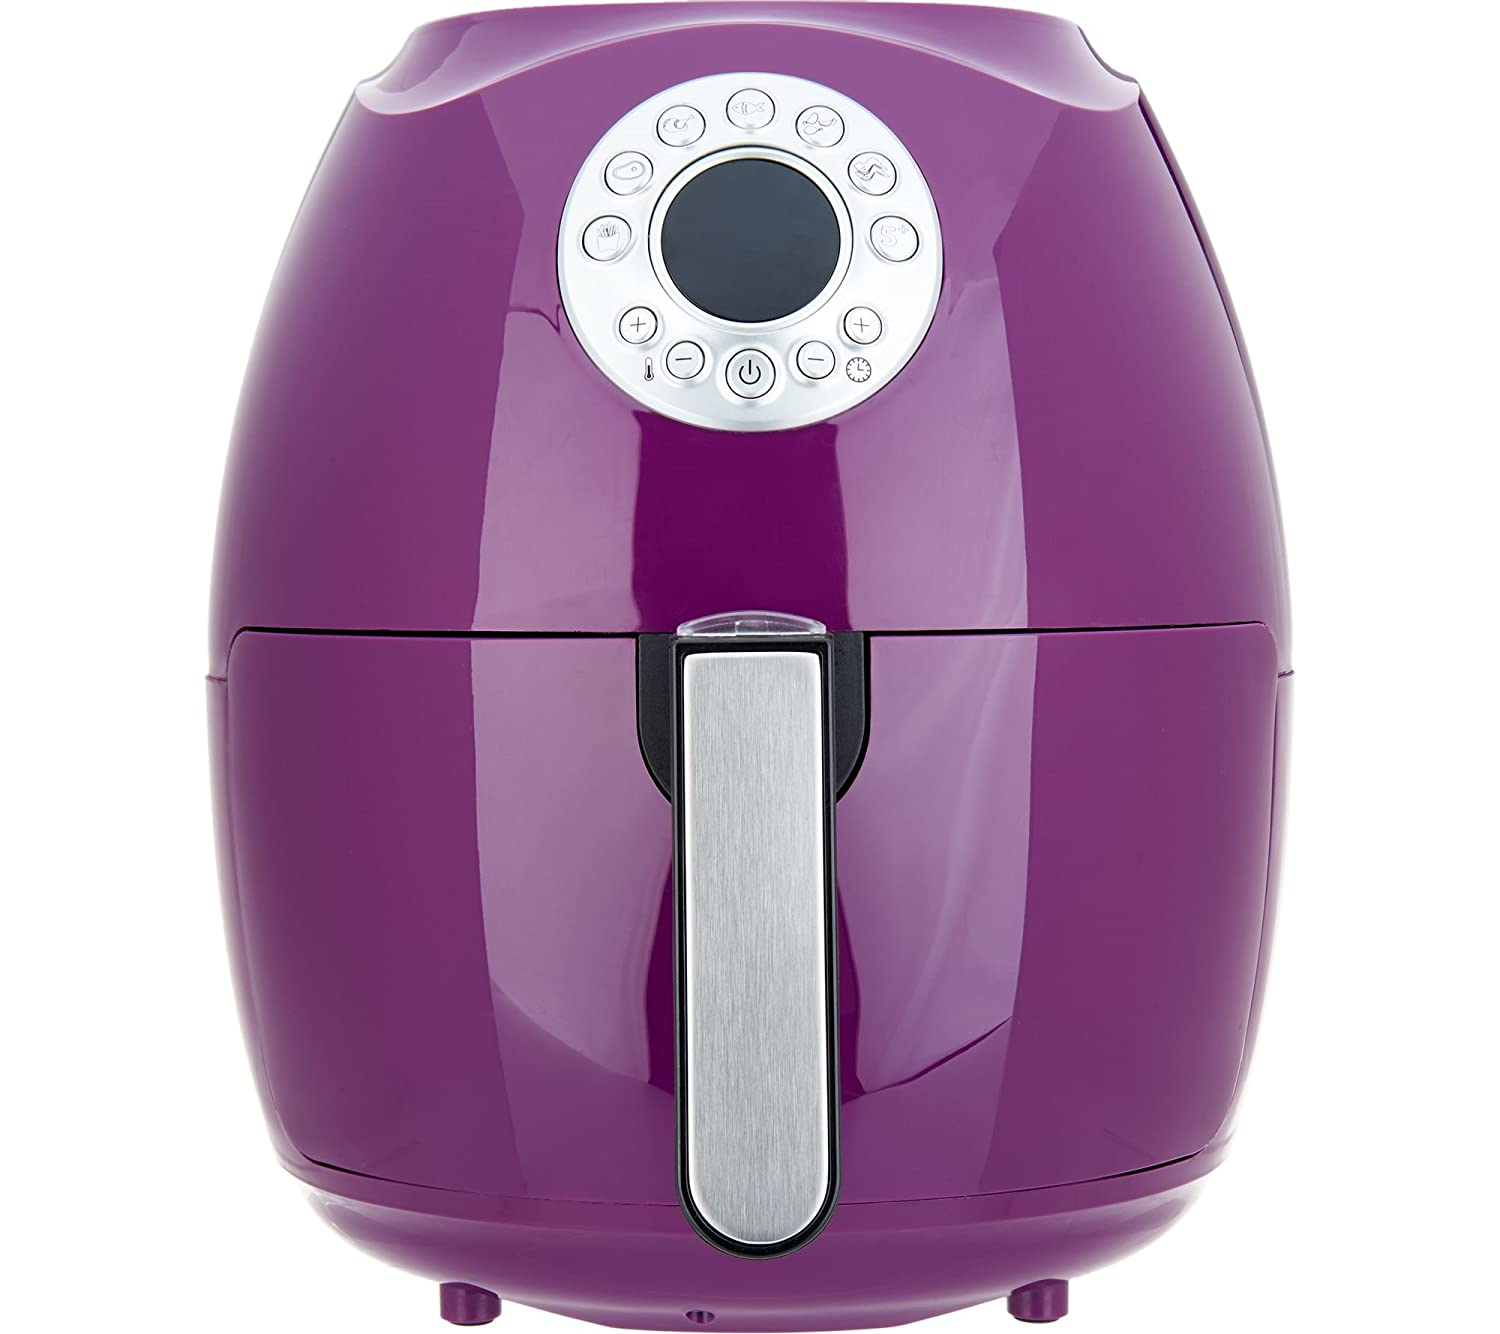 Cook's Essentials 3.4-qt Digital Air Fryer w/ Presets & Pans (Eggplant)